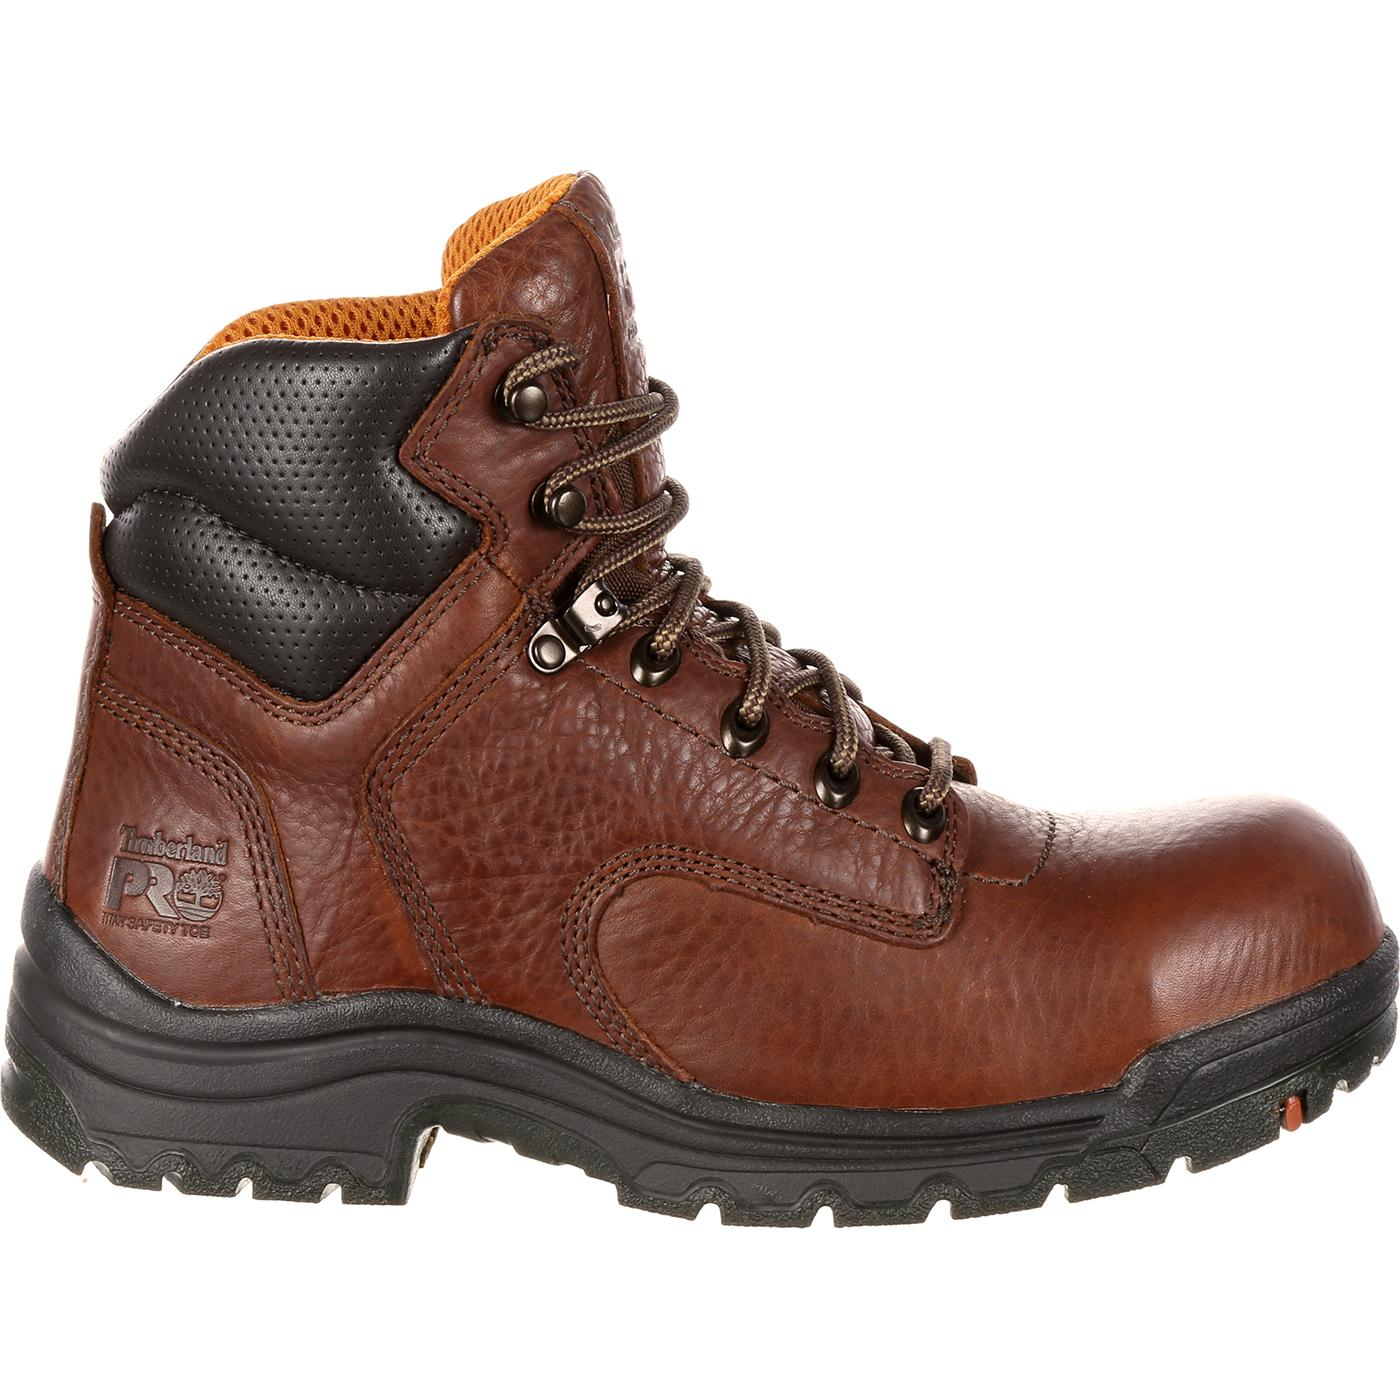 2e859bdf34d Timberland PRO TiTAN Women's Alloy Toe Work Boot